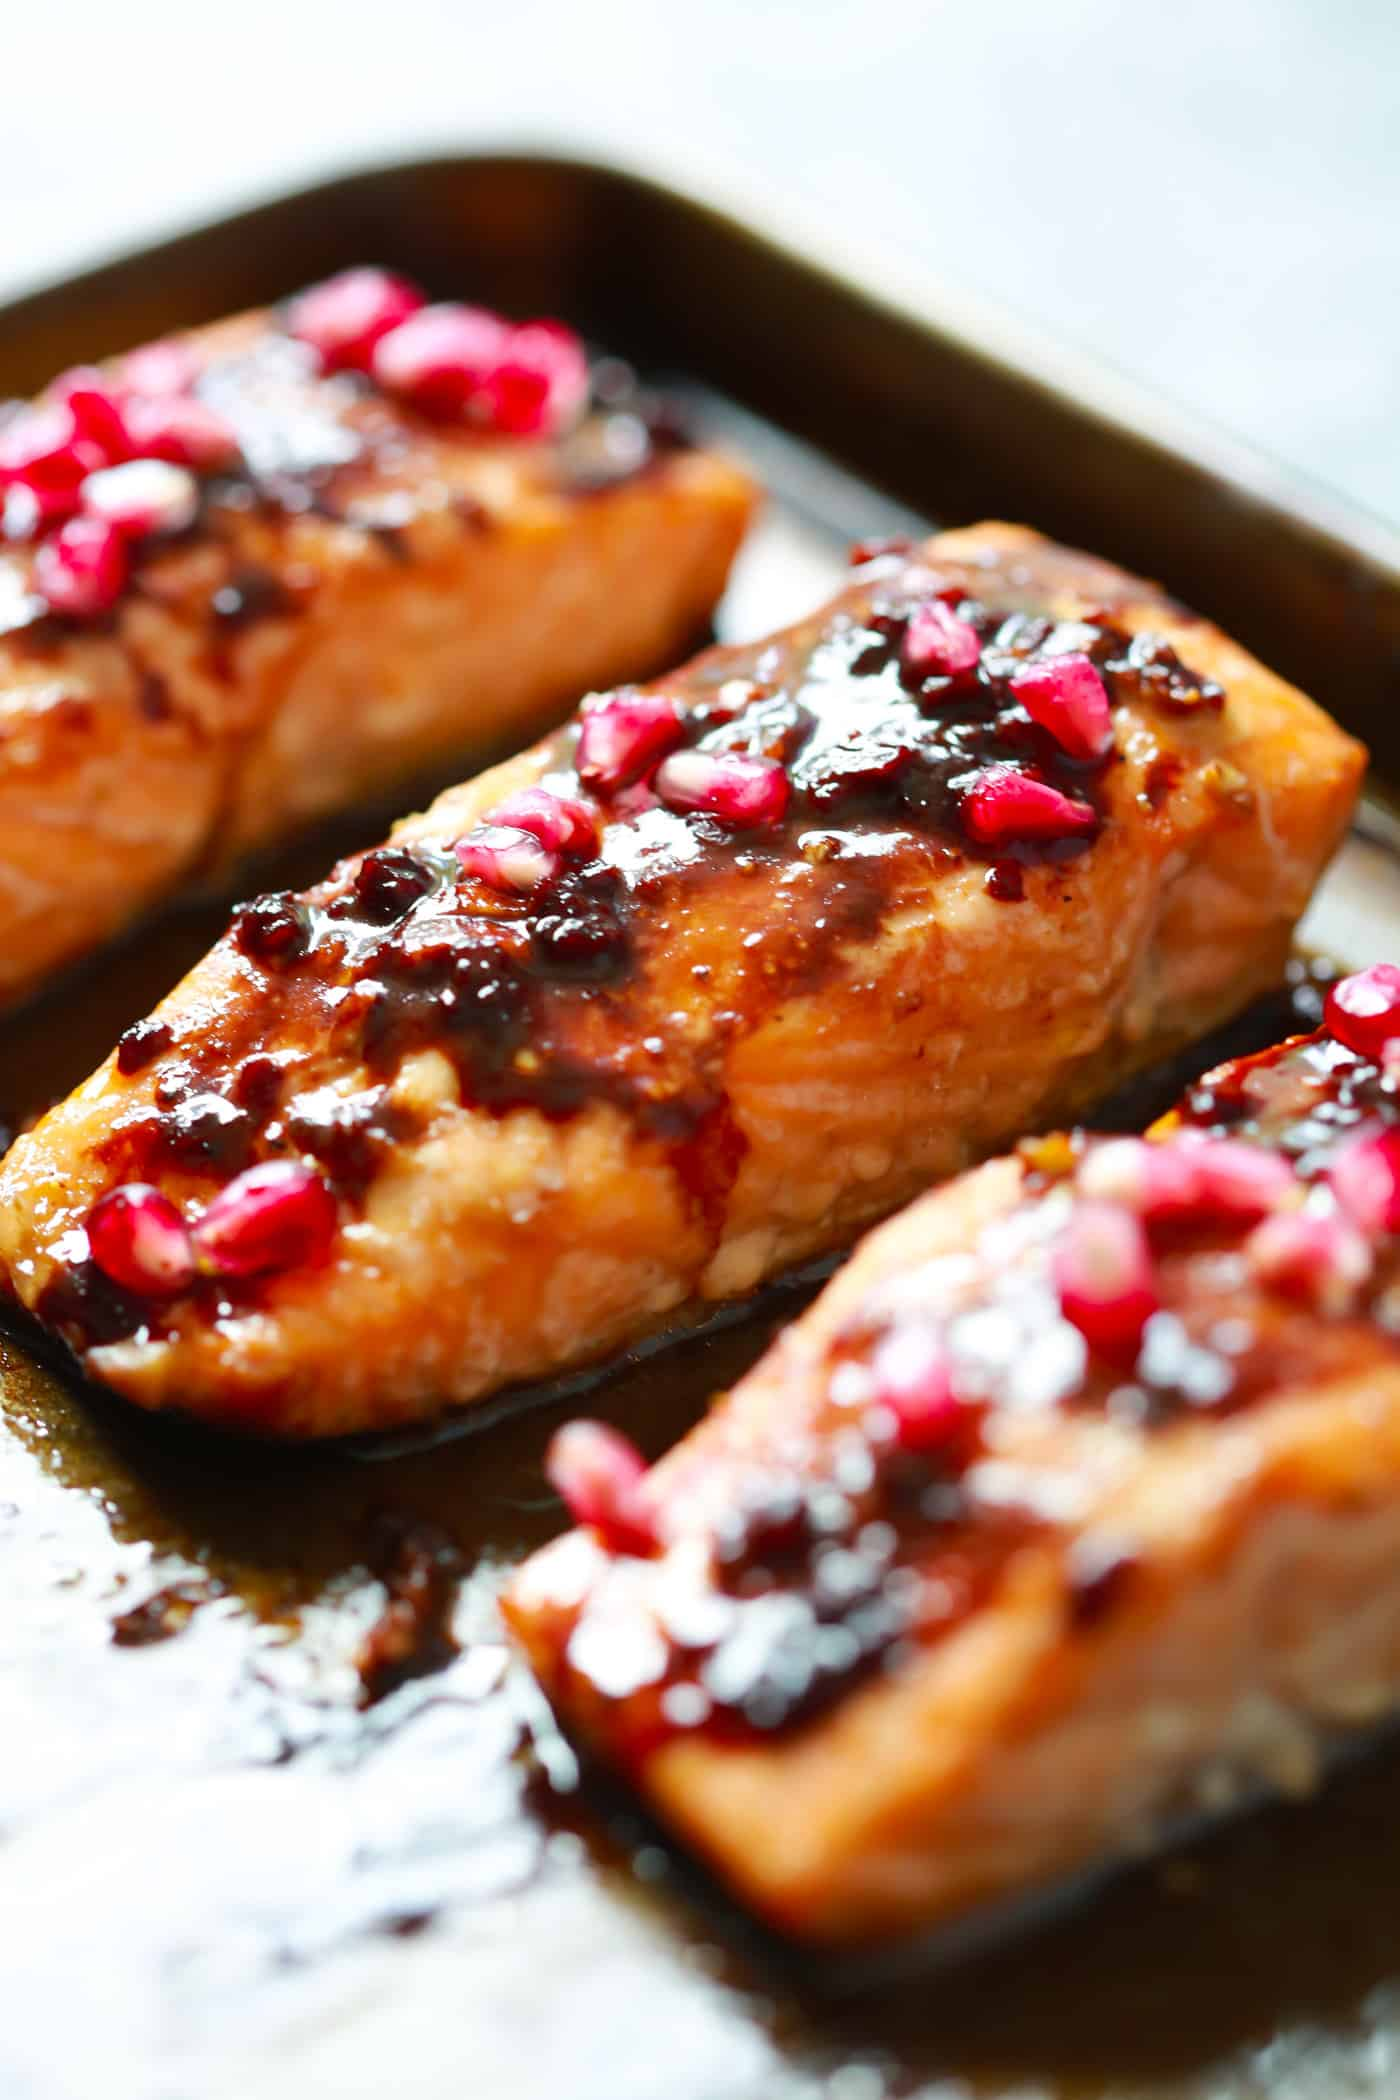 The easiest Pomegranate Glazed Salmon you will ever make. It only requires 4-ingredient and the glaze has no added sugar, but has a delicious tangy flavor!